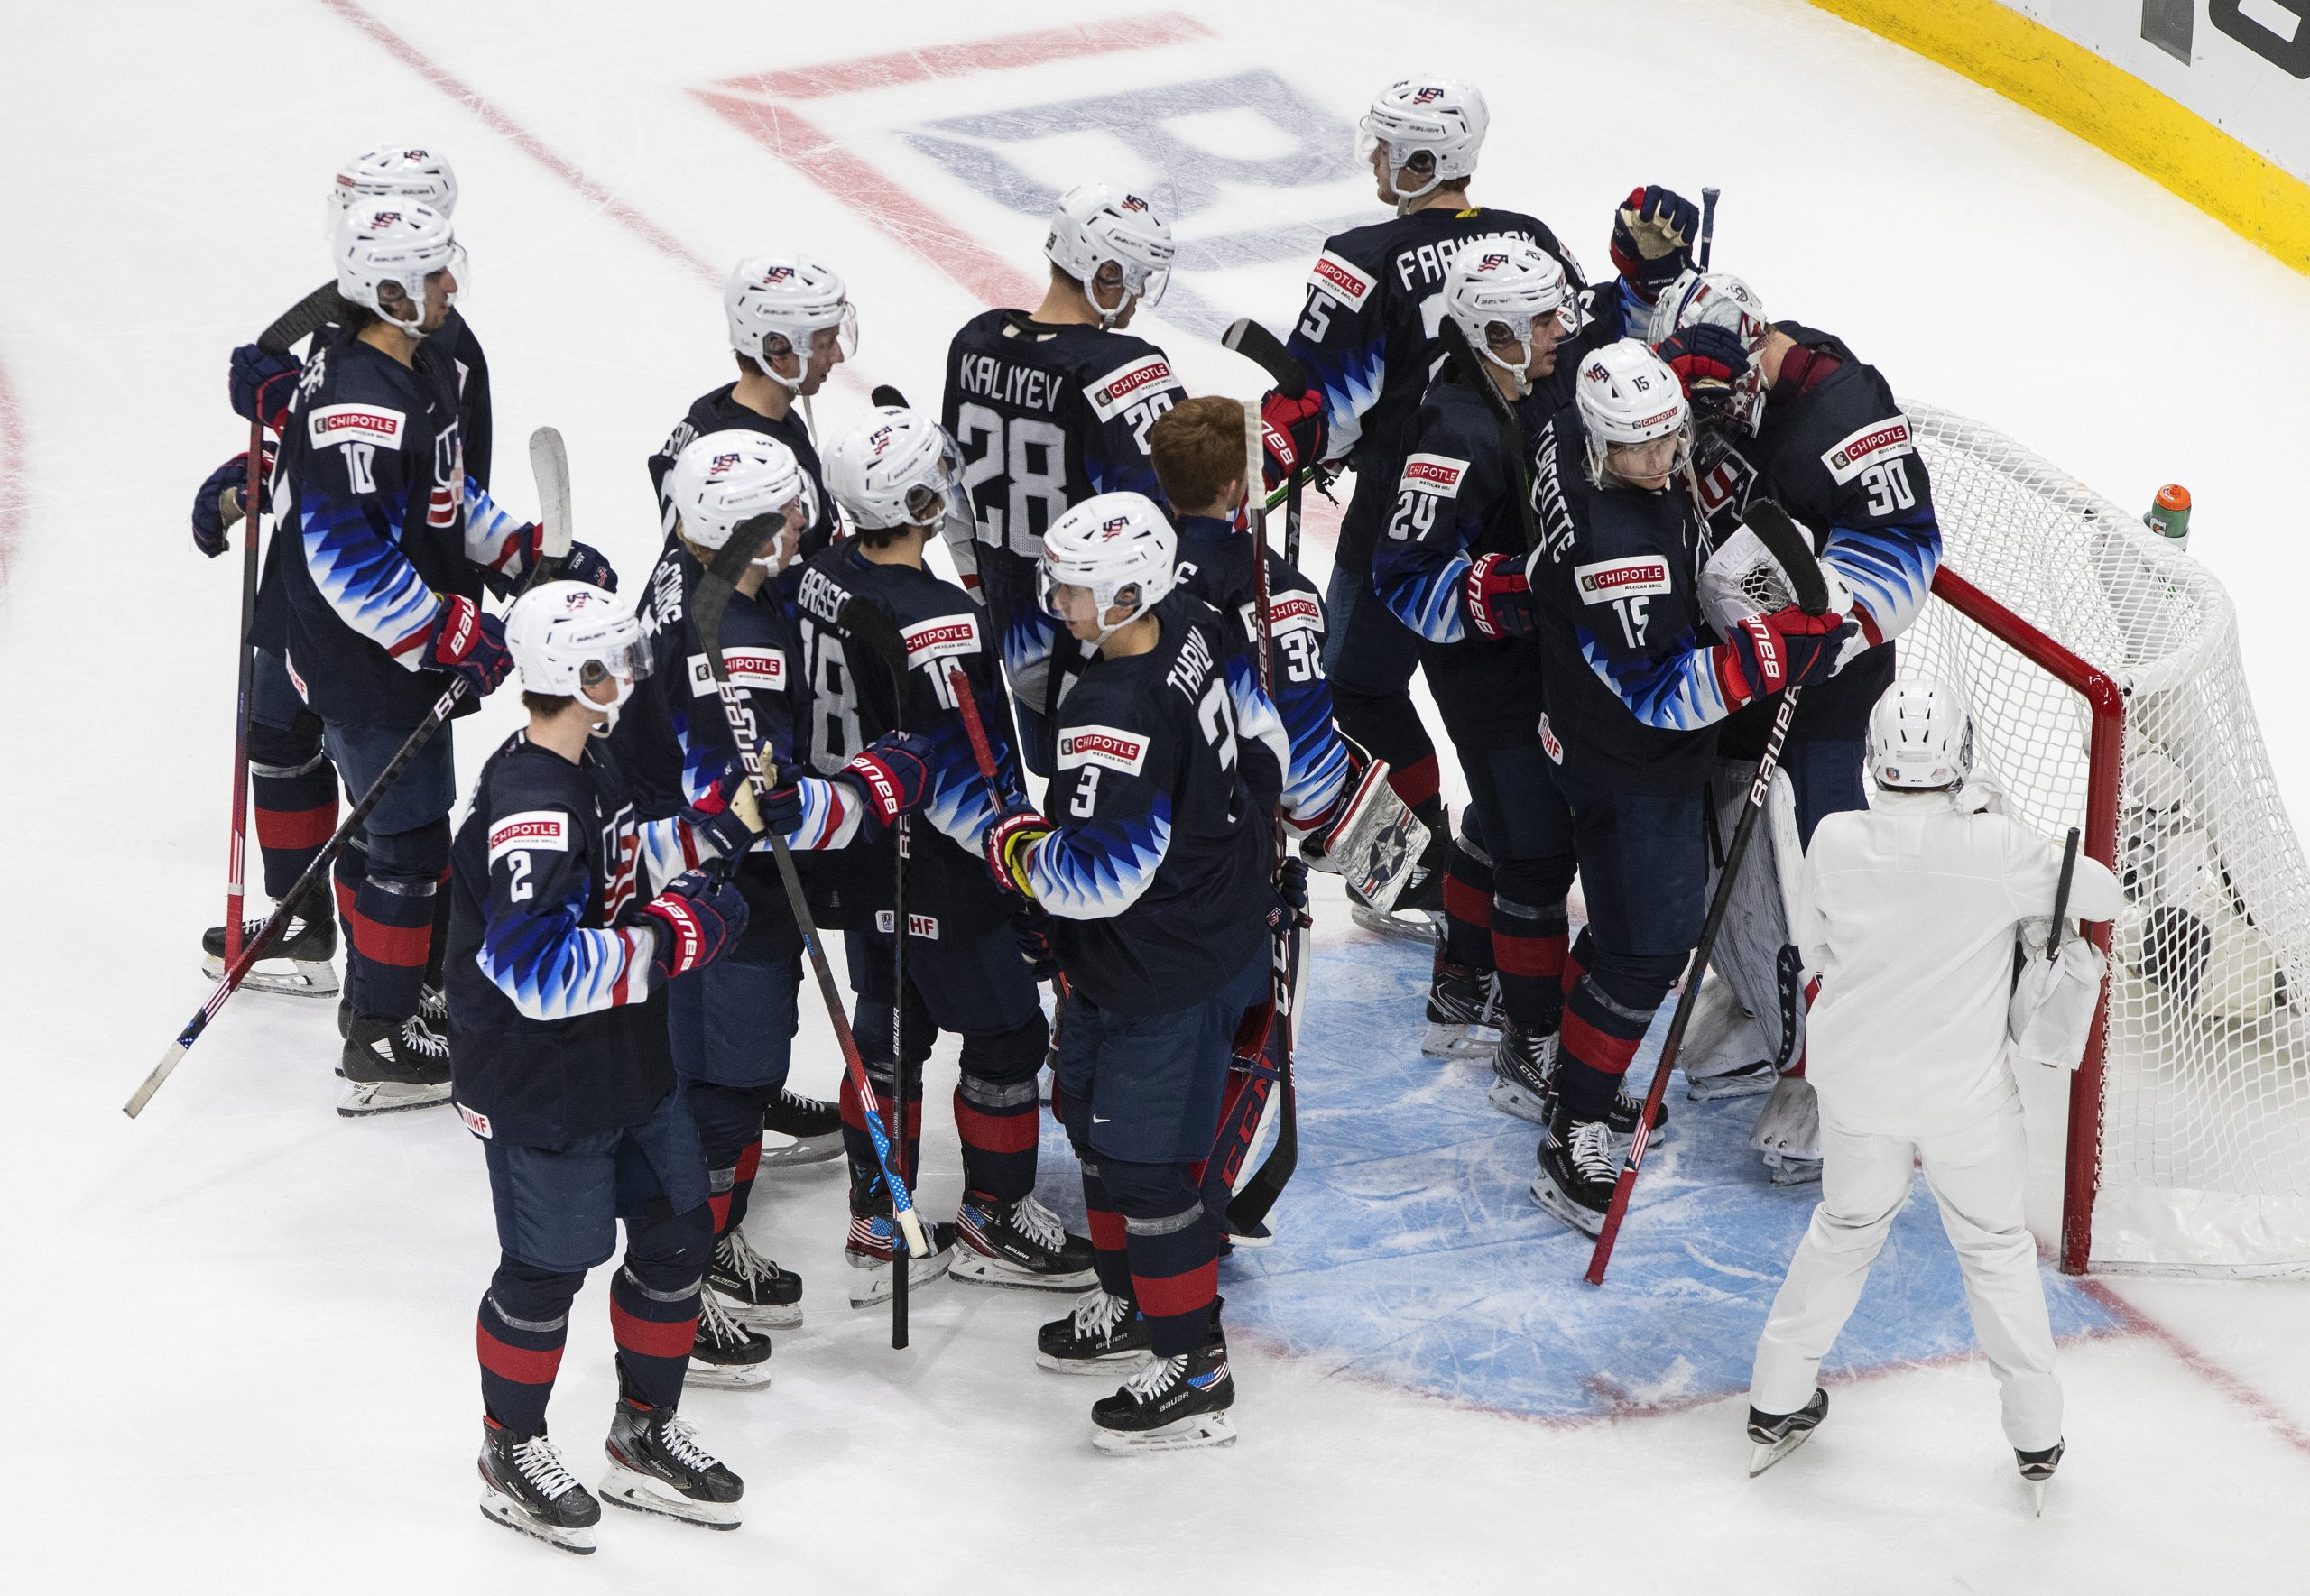 US upsets Canada to win world juniors gold